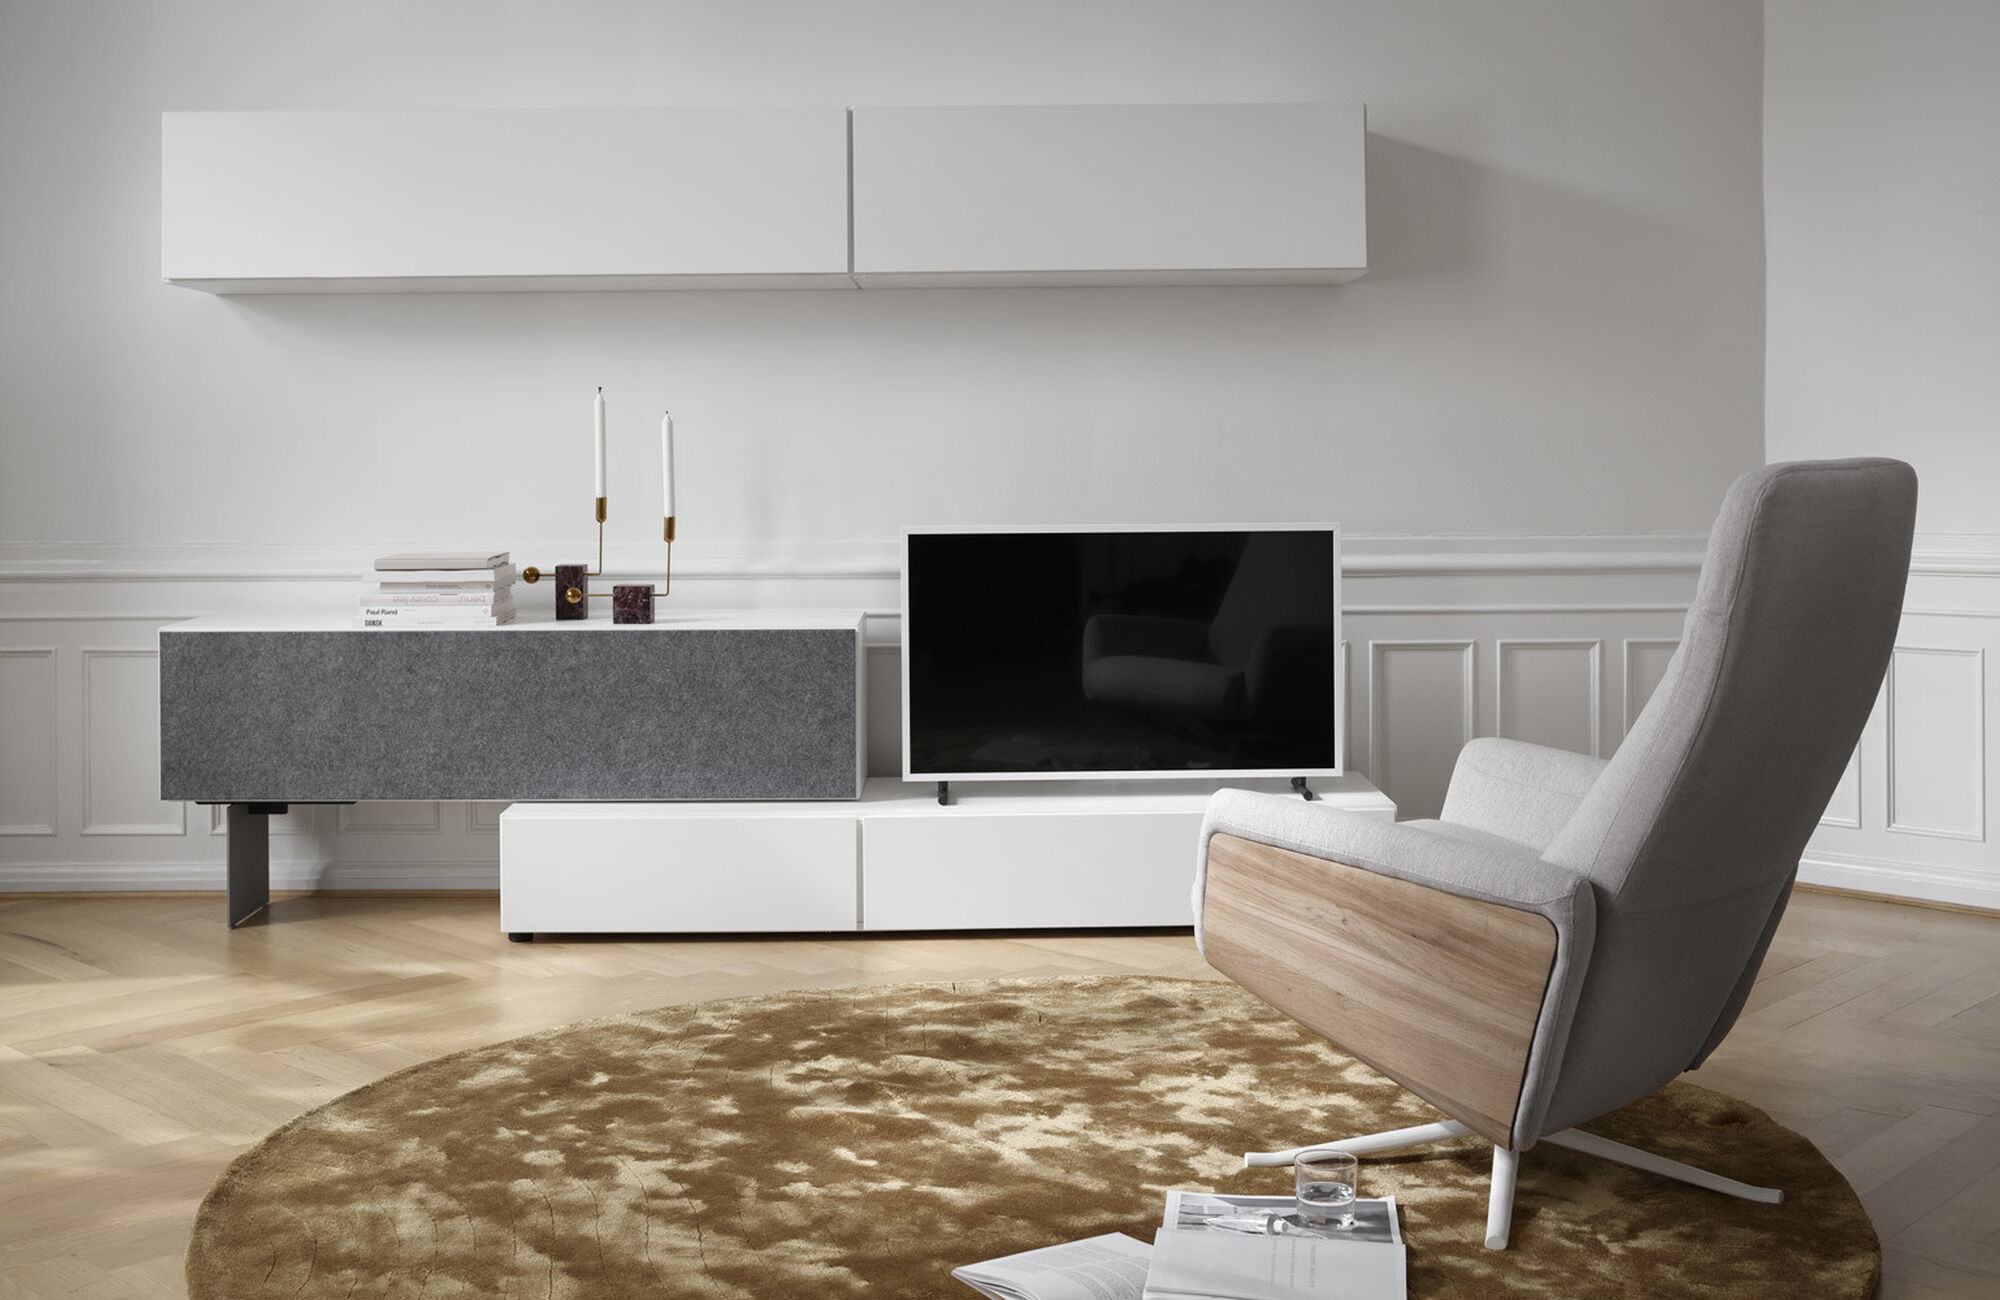 Wall systems - Lugano wall mounted wall system with drawers